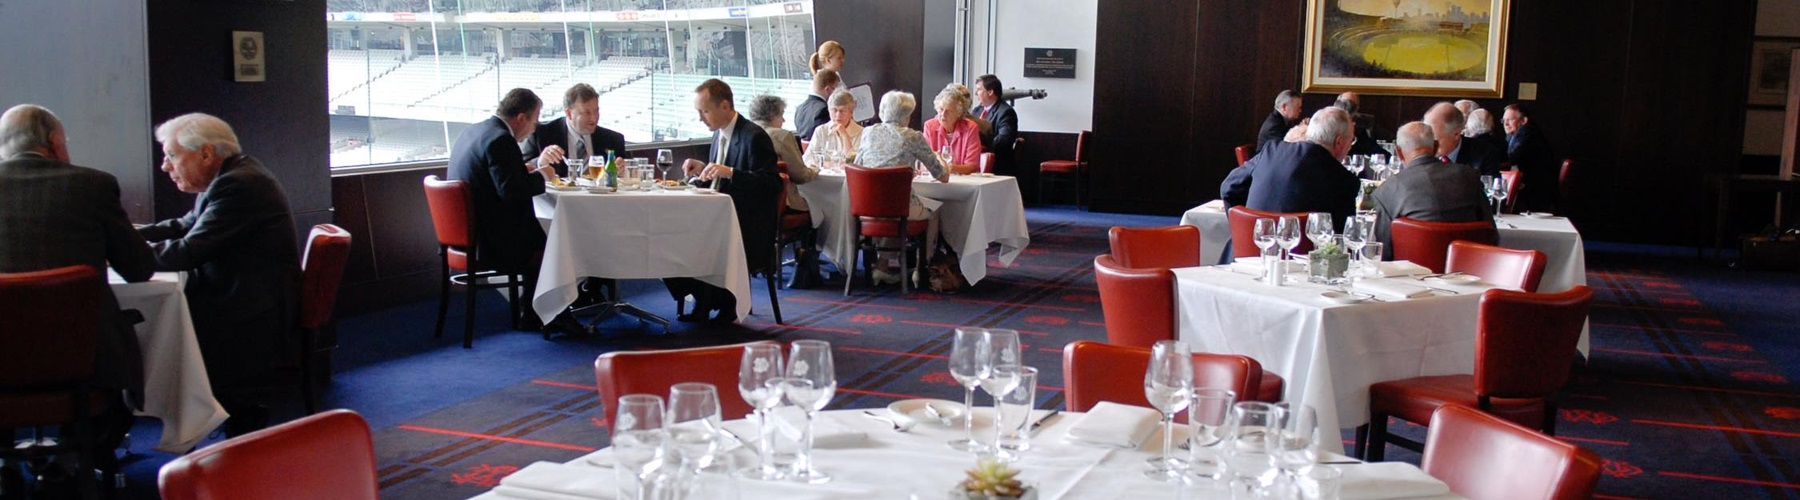 The Committee Room In MCC Members At MCG Does Lunch On Weekdays Excluding Public Holidays And Xmas So Lets Go A Friday